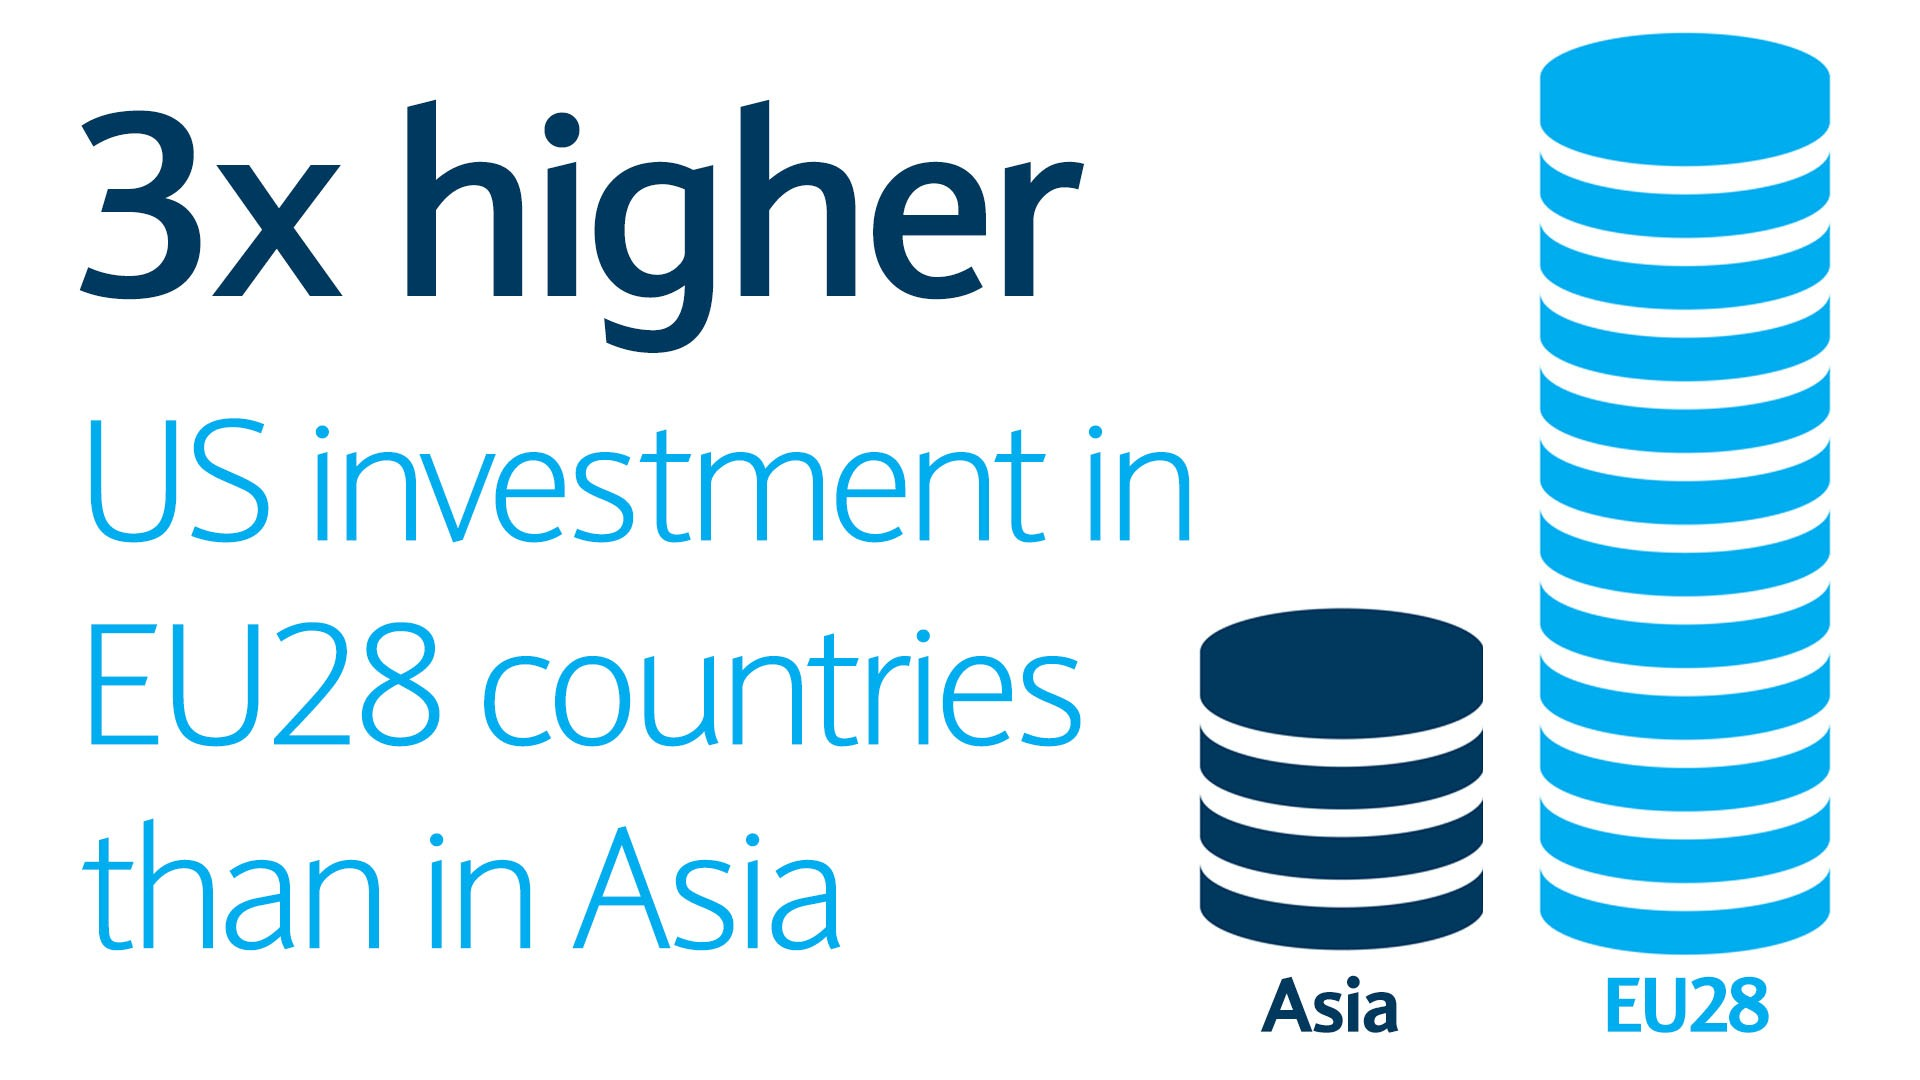 3x higher US investment in \EU28 countries than in Asia